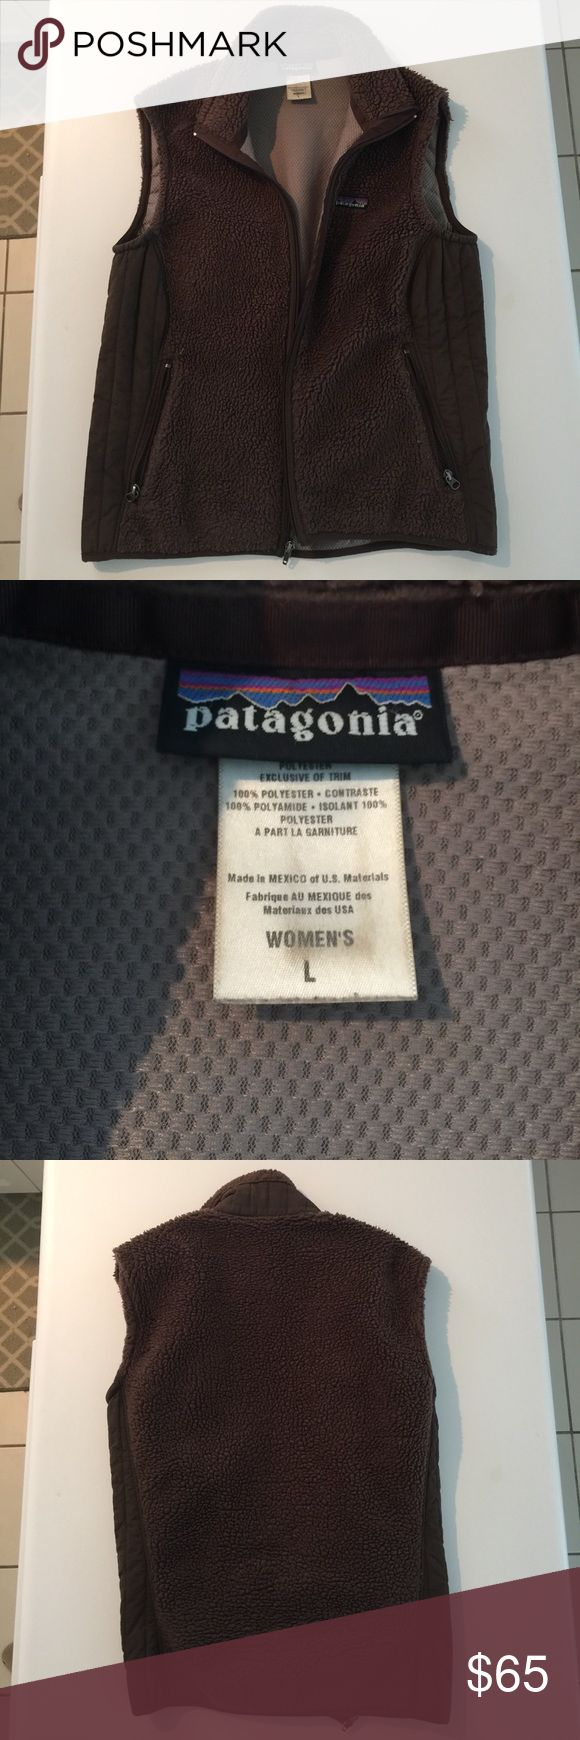 Chocolate Brown Patagonia Vest Chocolate Brown. Zipper pockets. Good used condition. Patagonia Jackets & Coats Vests